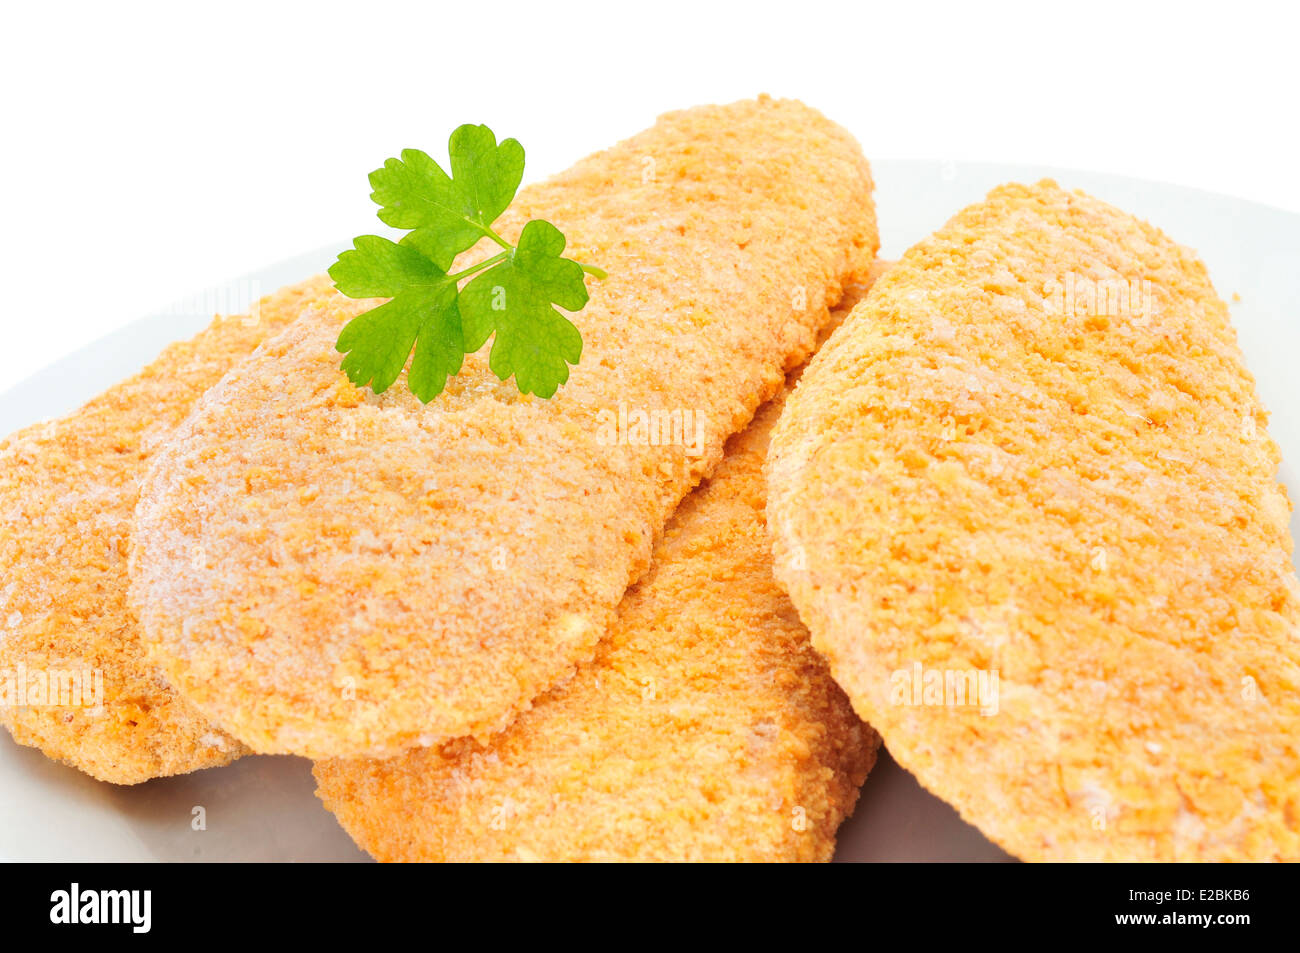 closeup of a plate with some pieces of frozen breaded fish on a white background ready to be cooked Stock Photo